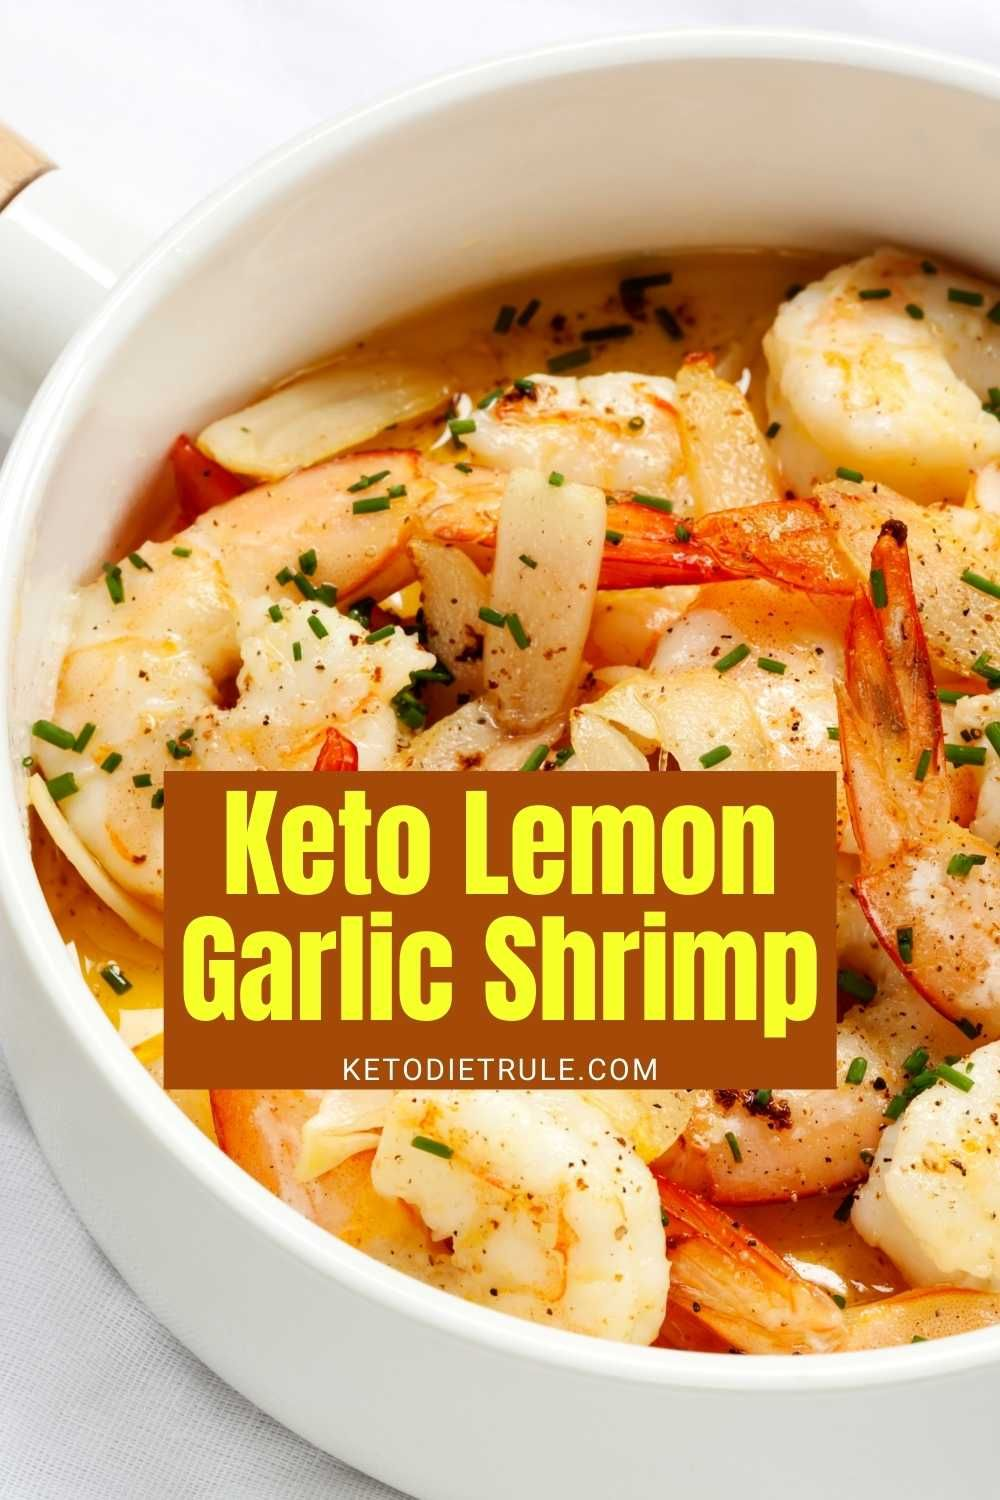 15 Easy Keto Pescatarian Recipes to Try – Keto Die